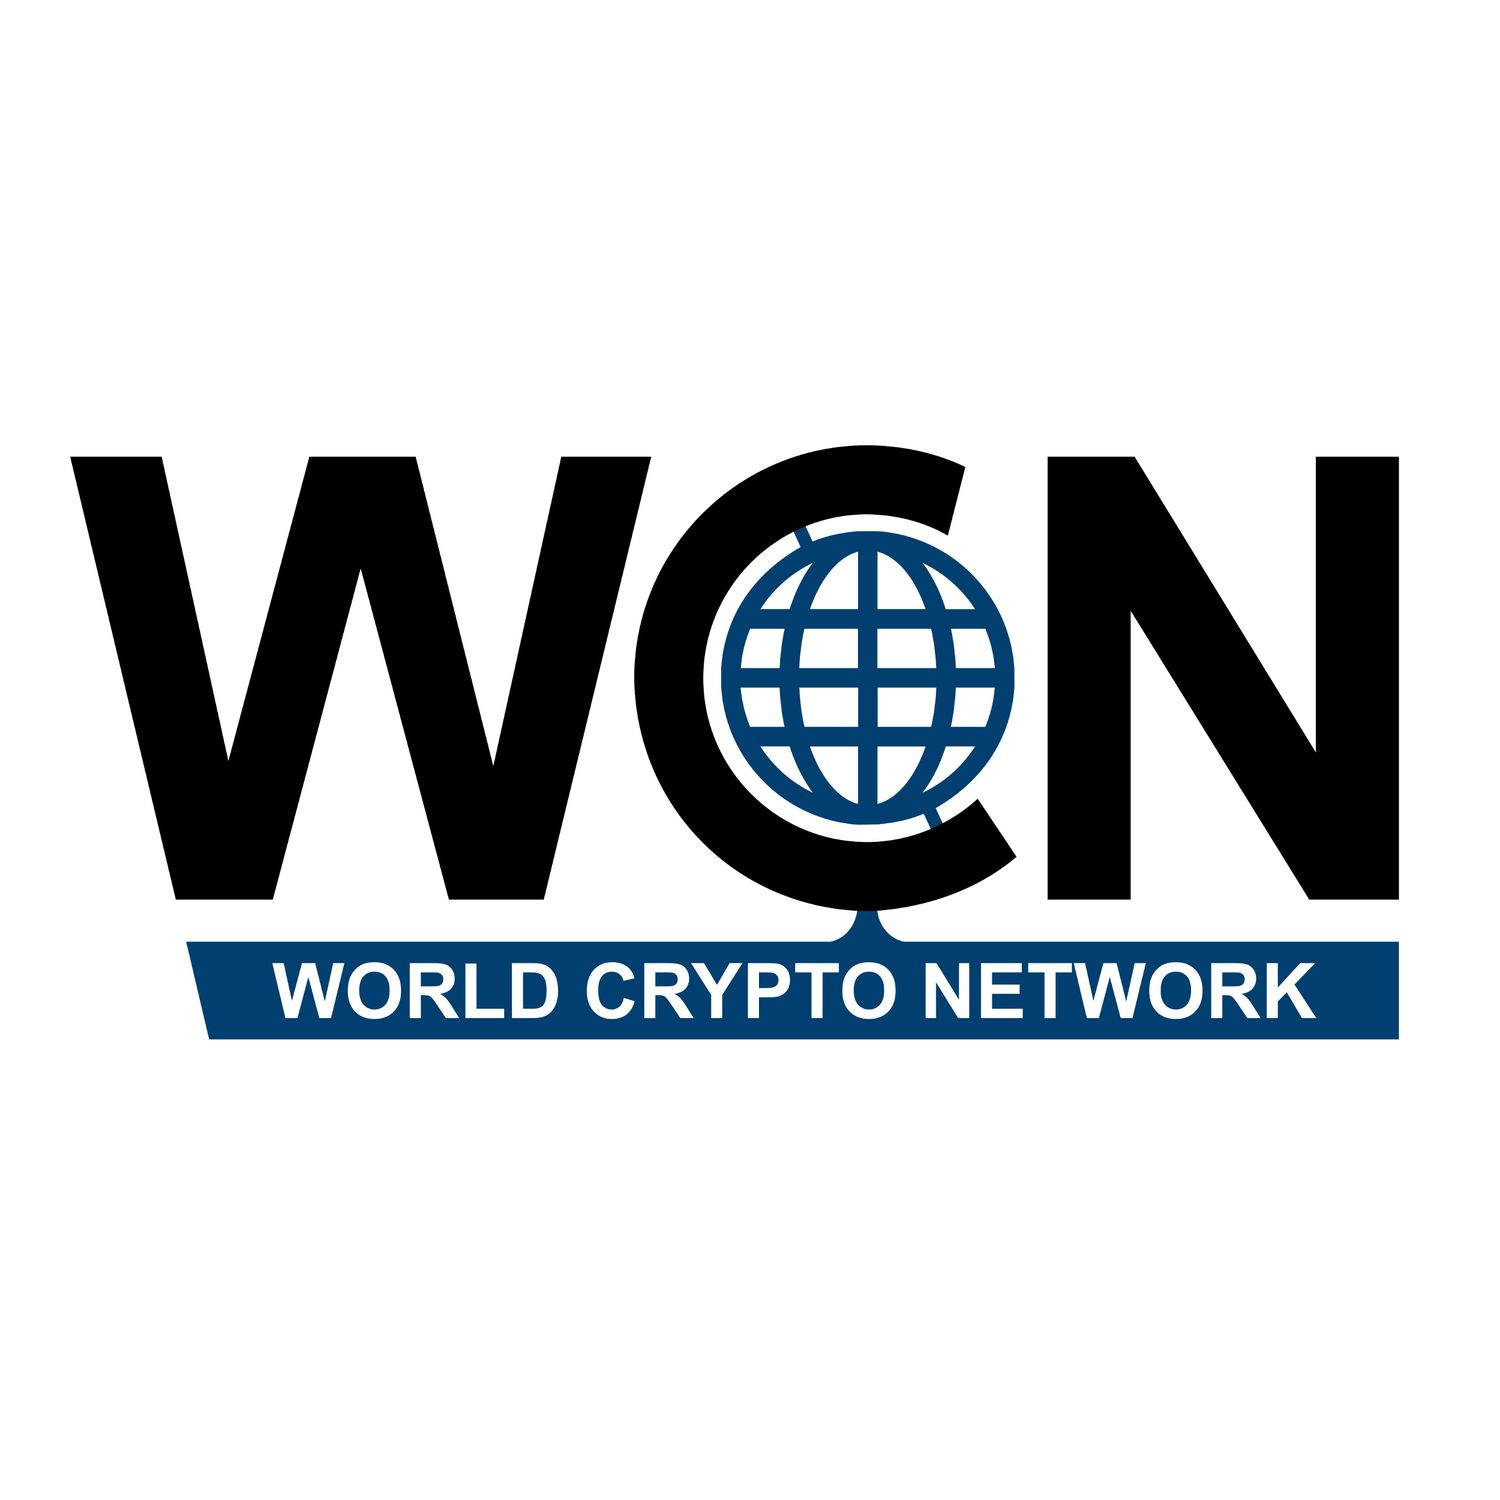 WCN @ MisesU ~ Let's talk Bitcoin with Dr. Joseph Salerno, Bitstein, JW Weatherman & Max Hillebrand